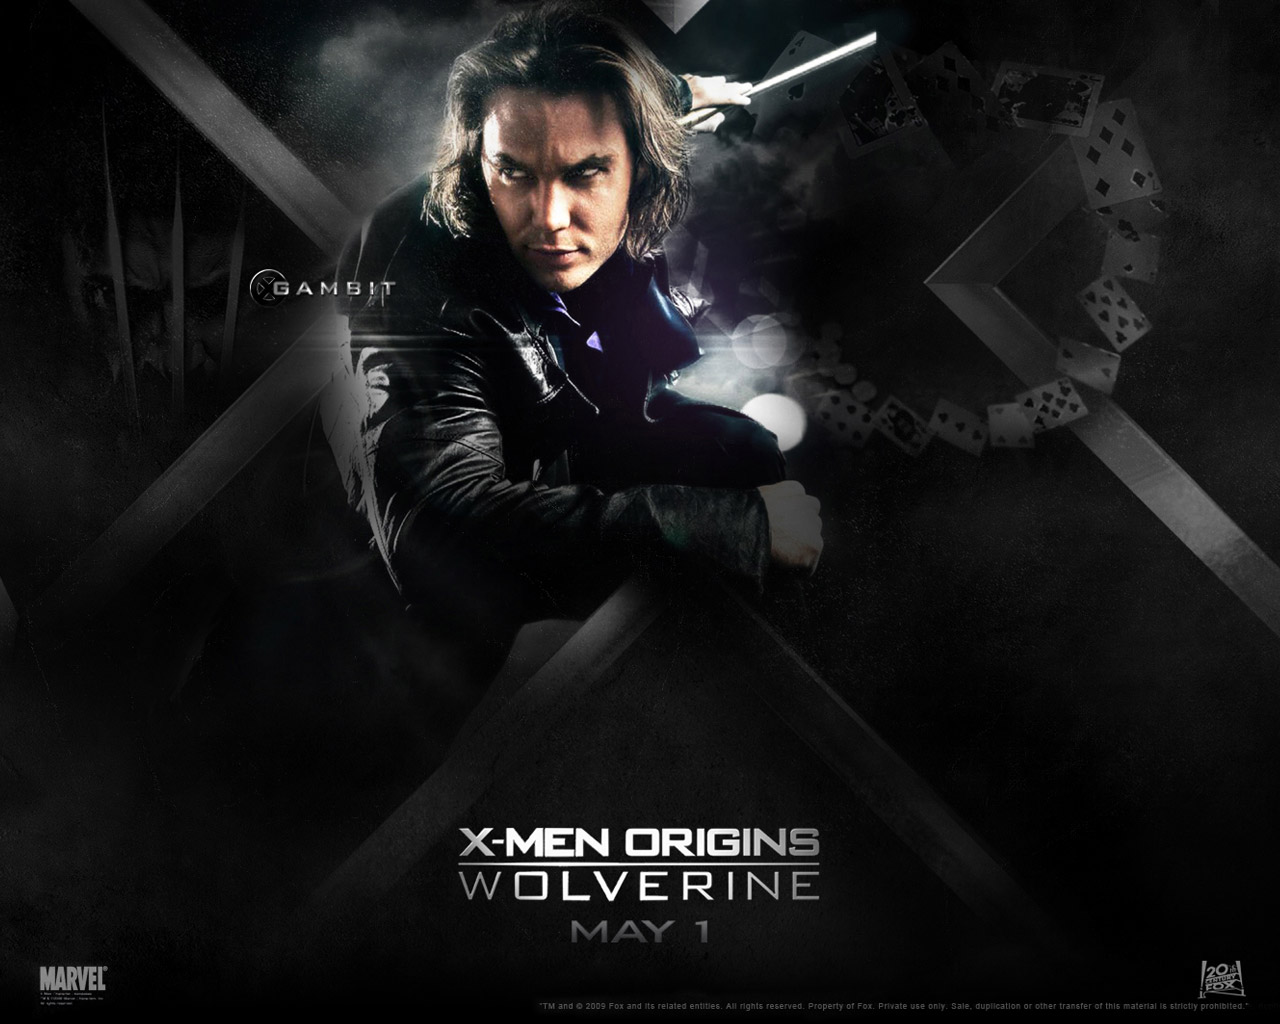 Wallpaper X Men Origins Wolverine Movies